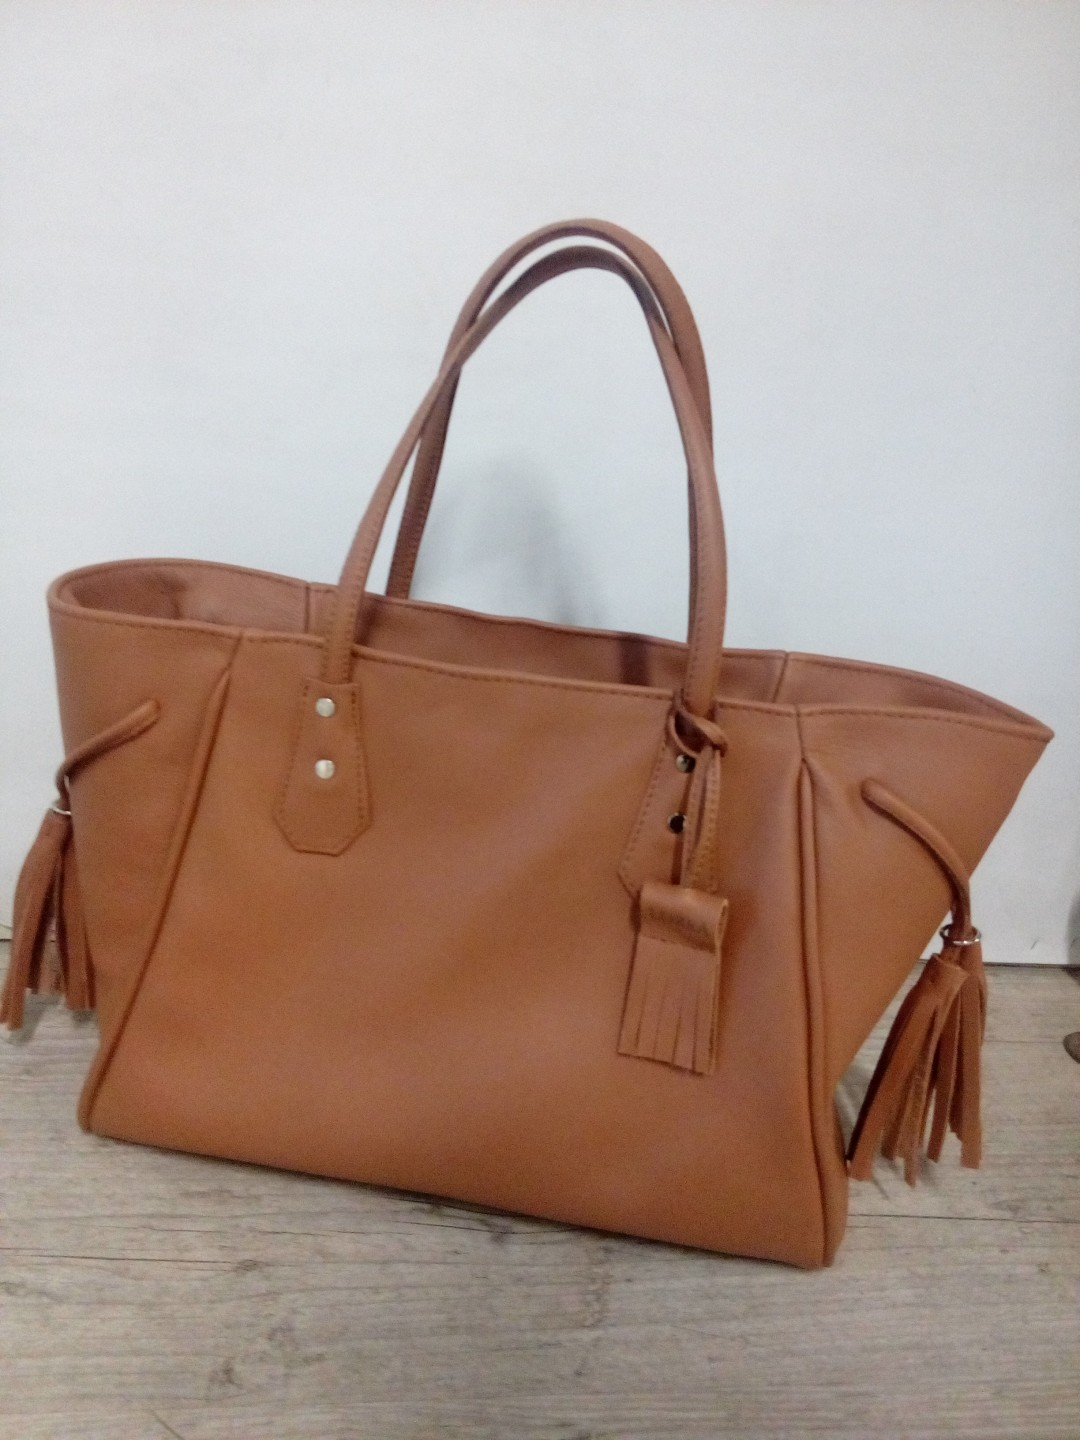 Sac taurillon gold